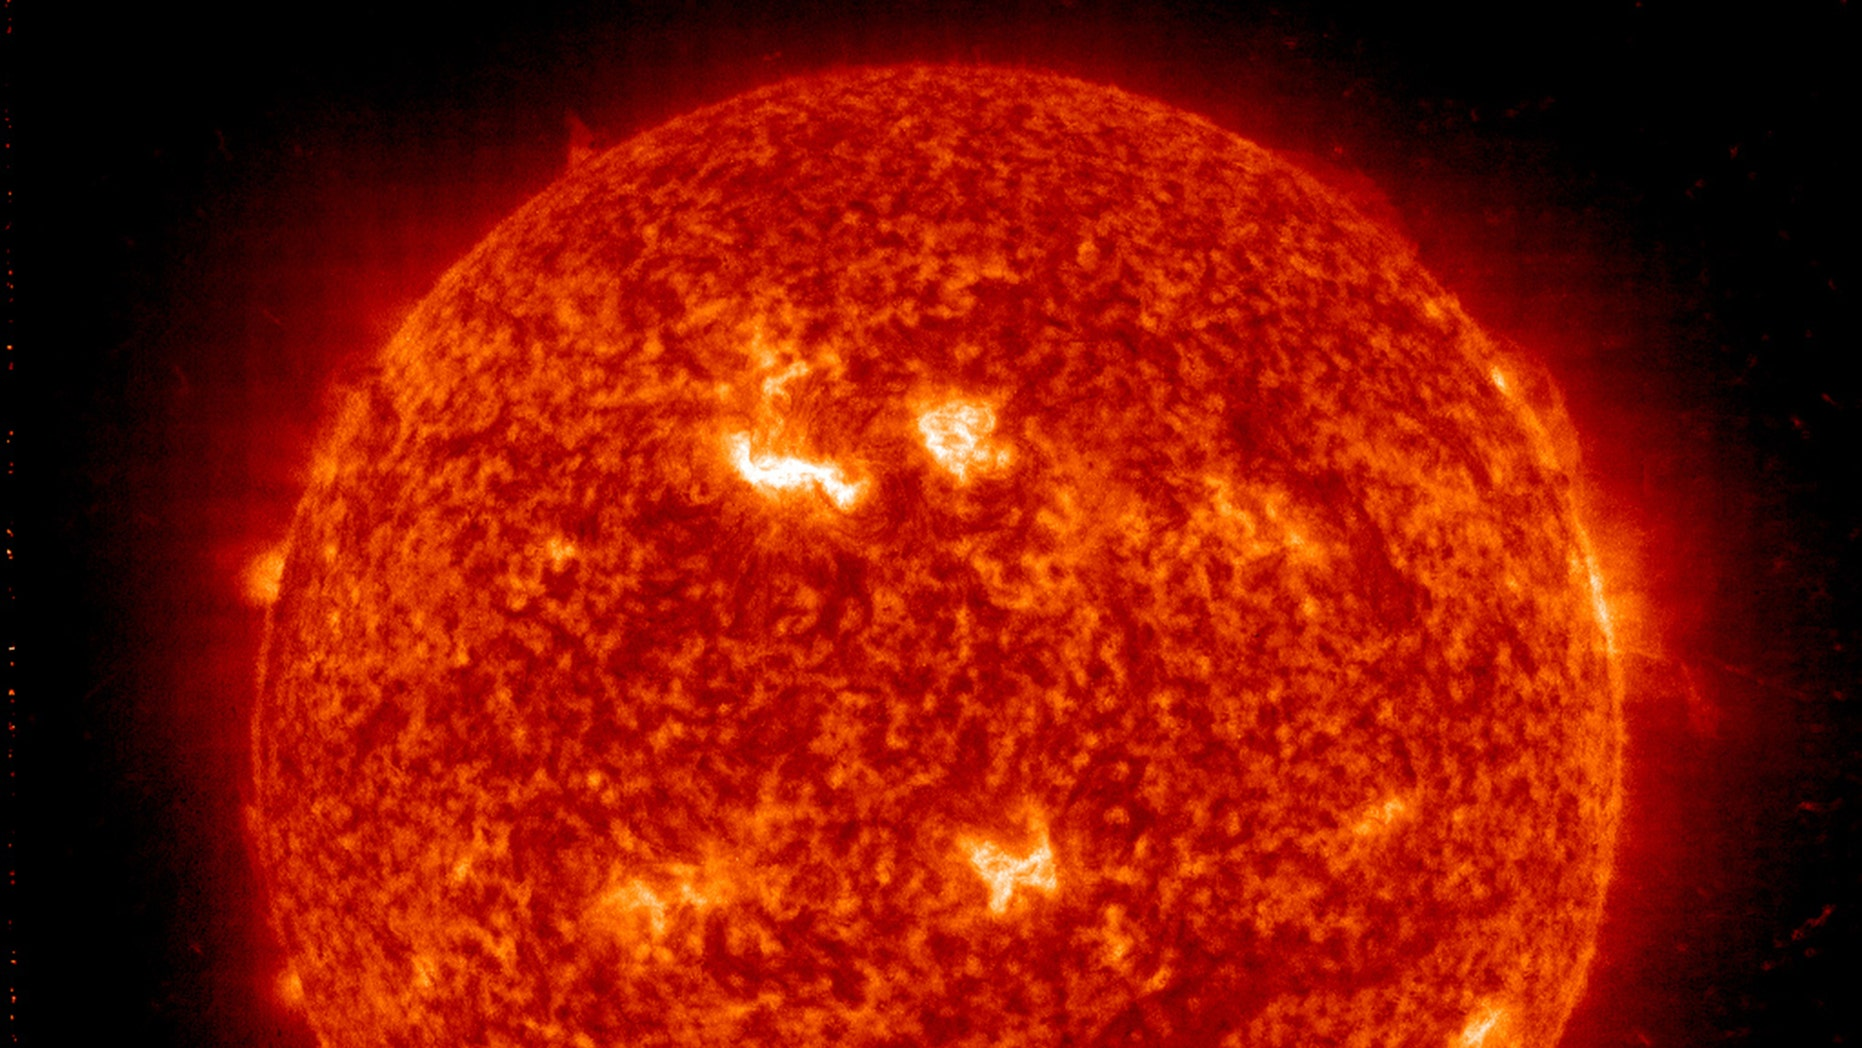 File photo - NASA handout image shows the Sun acquired by the Solar and Heliospheric Observatory on March 8, 2012.